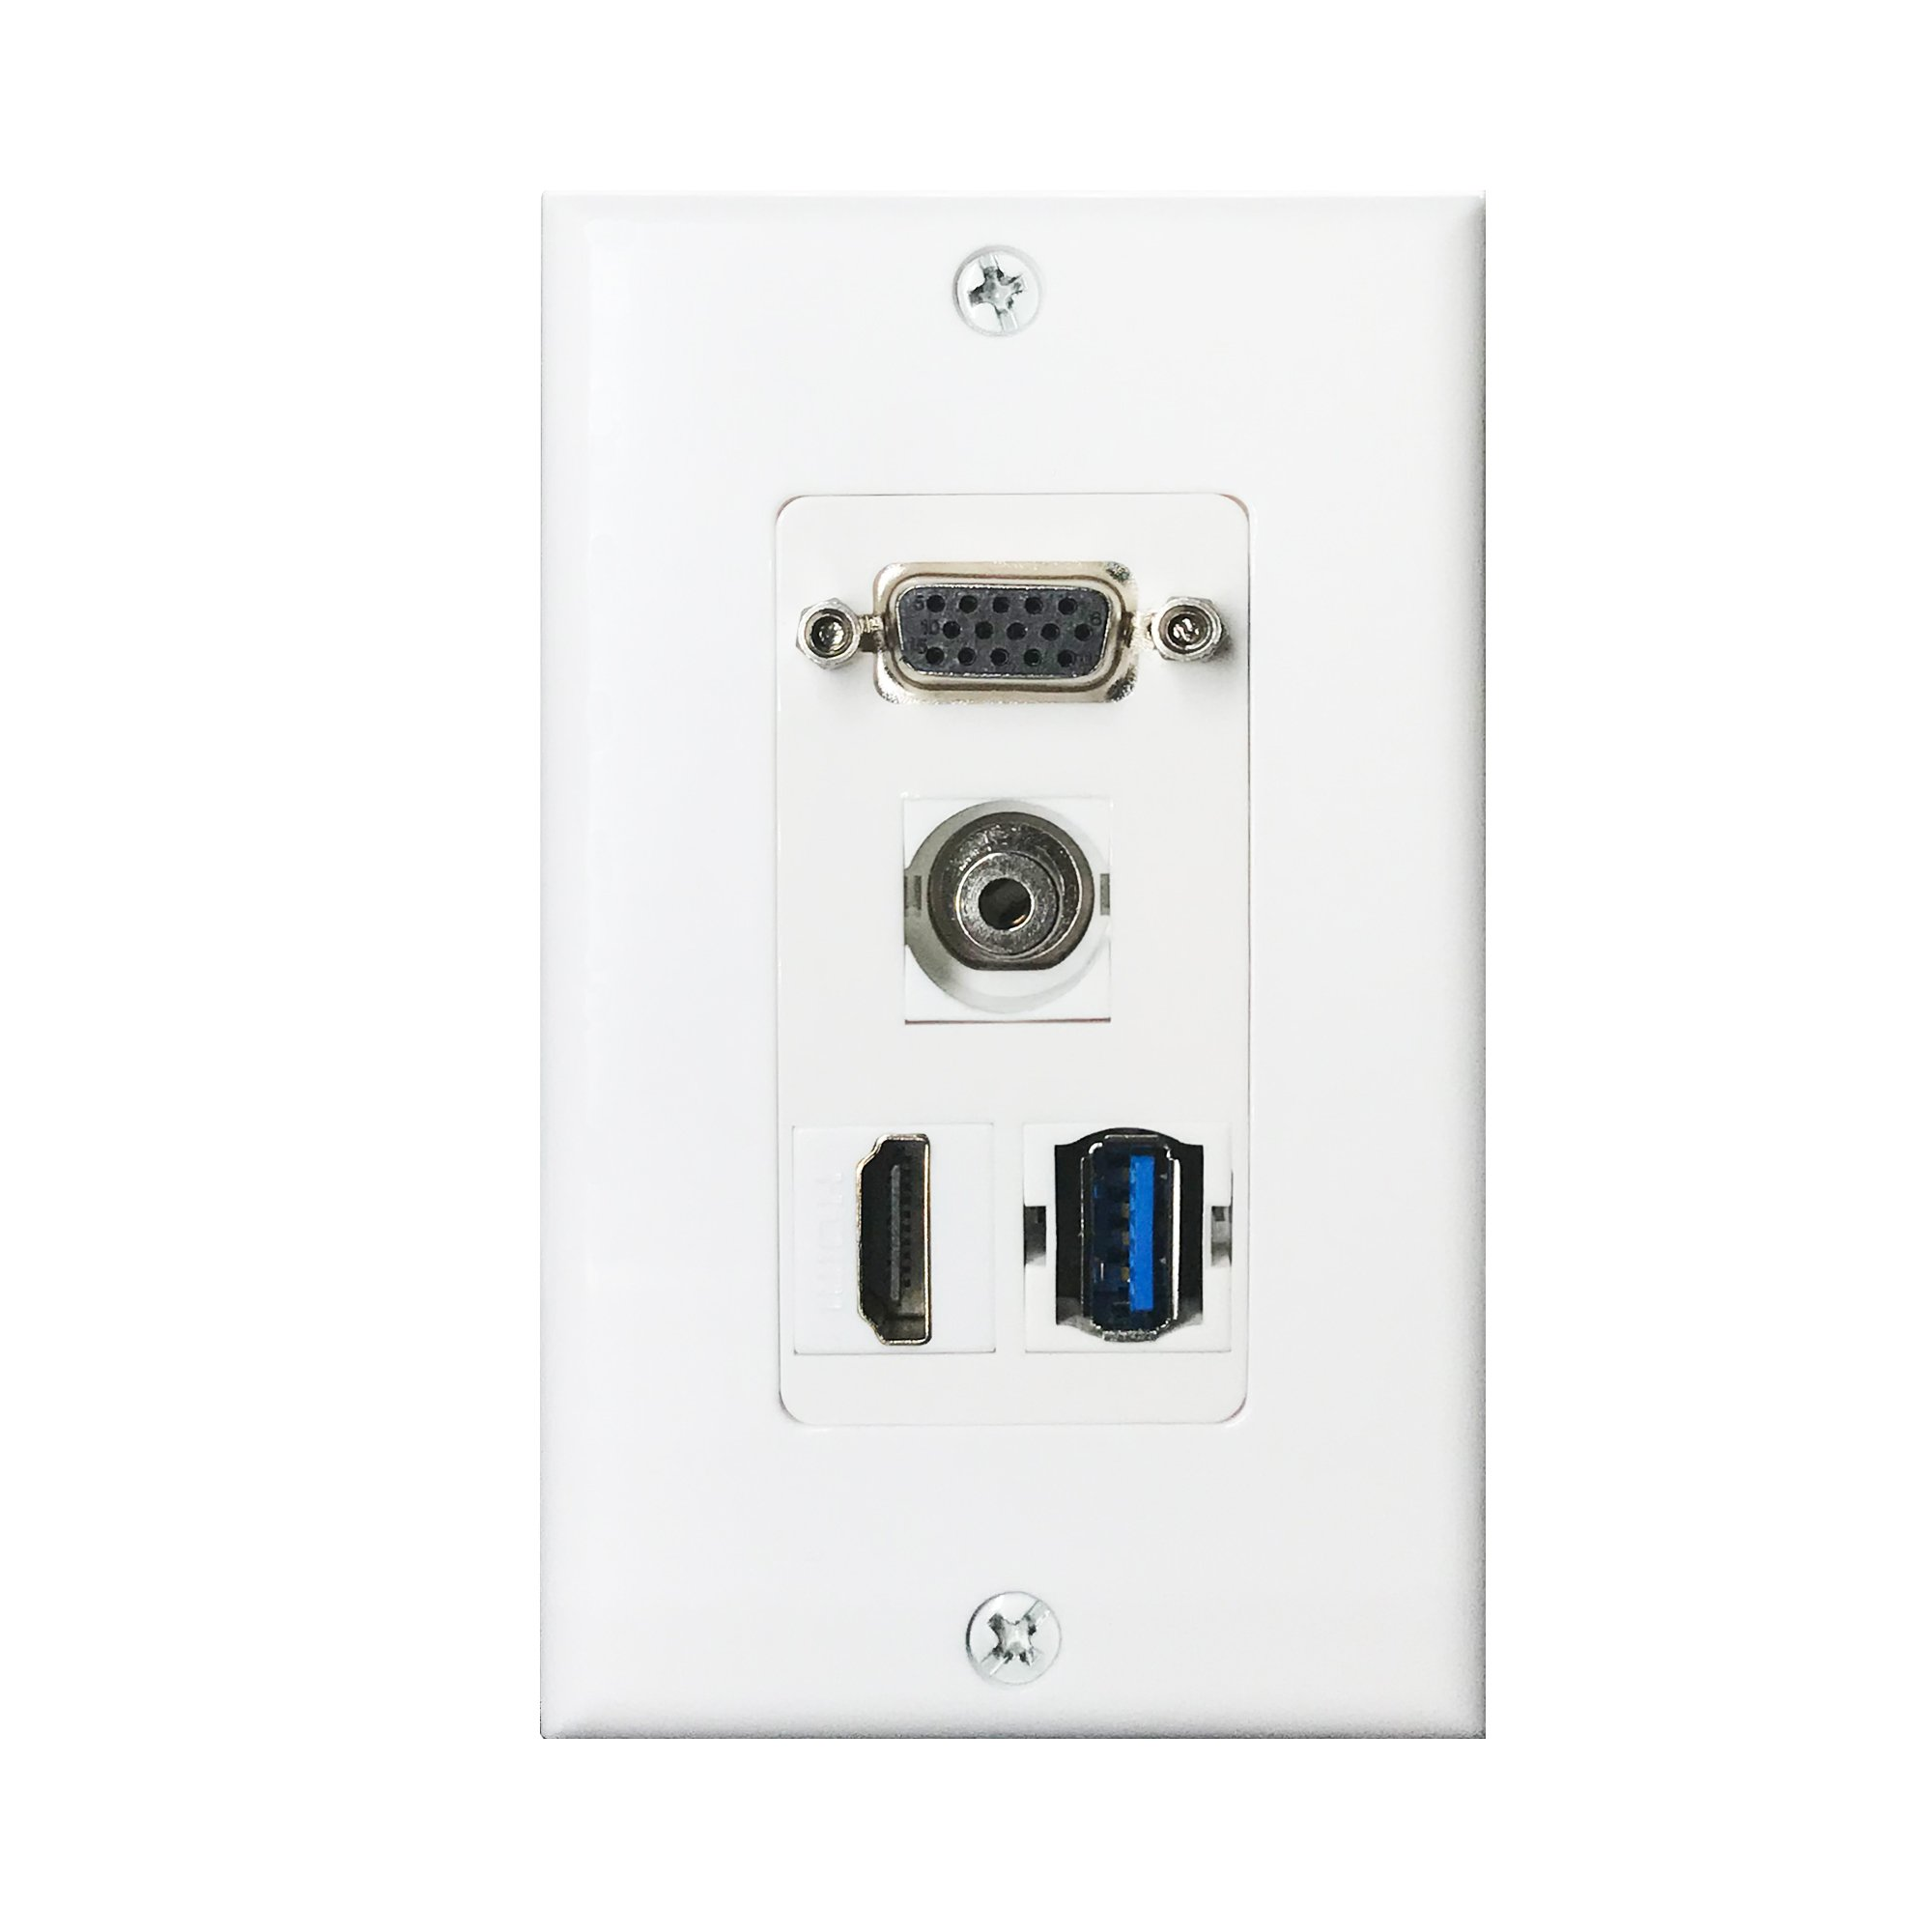 HDMI USB VGA 3.5mm Audio Wall Plate,Yomyrayhu,Works for Home Theater,HDTV and More